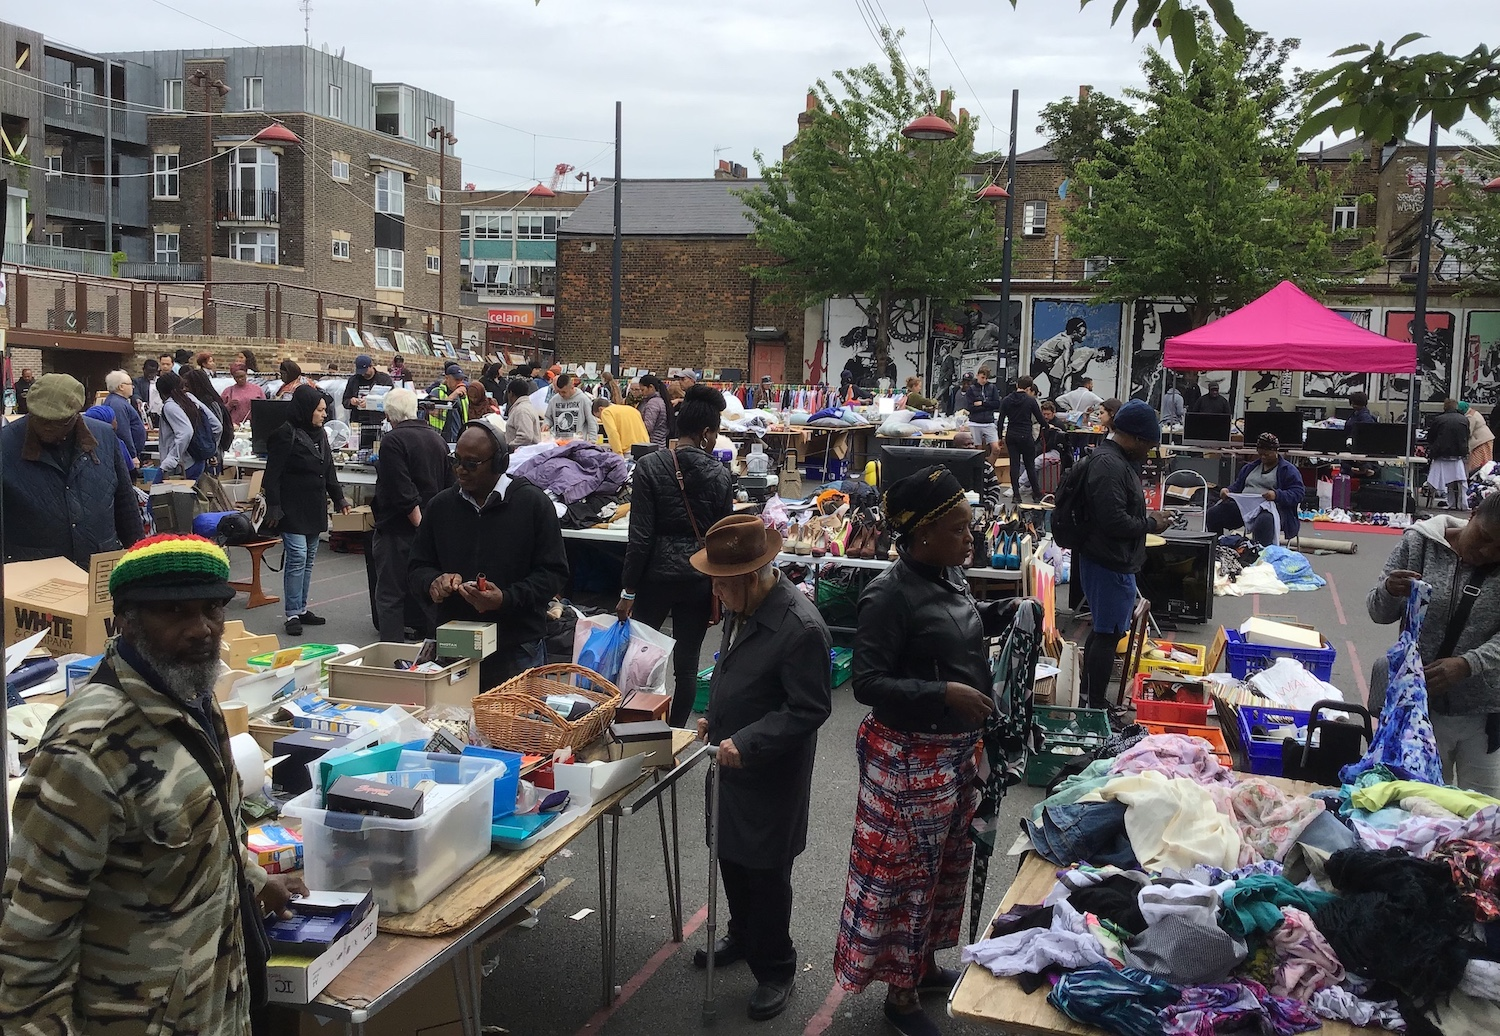 Clothes, books, and bric-a-brac onsale at Deptford Market.